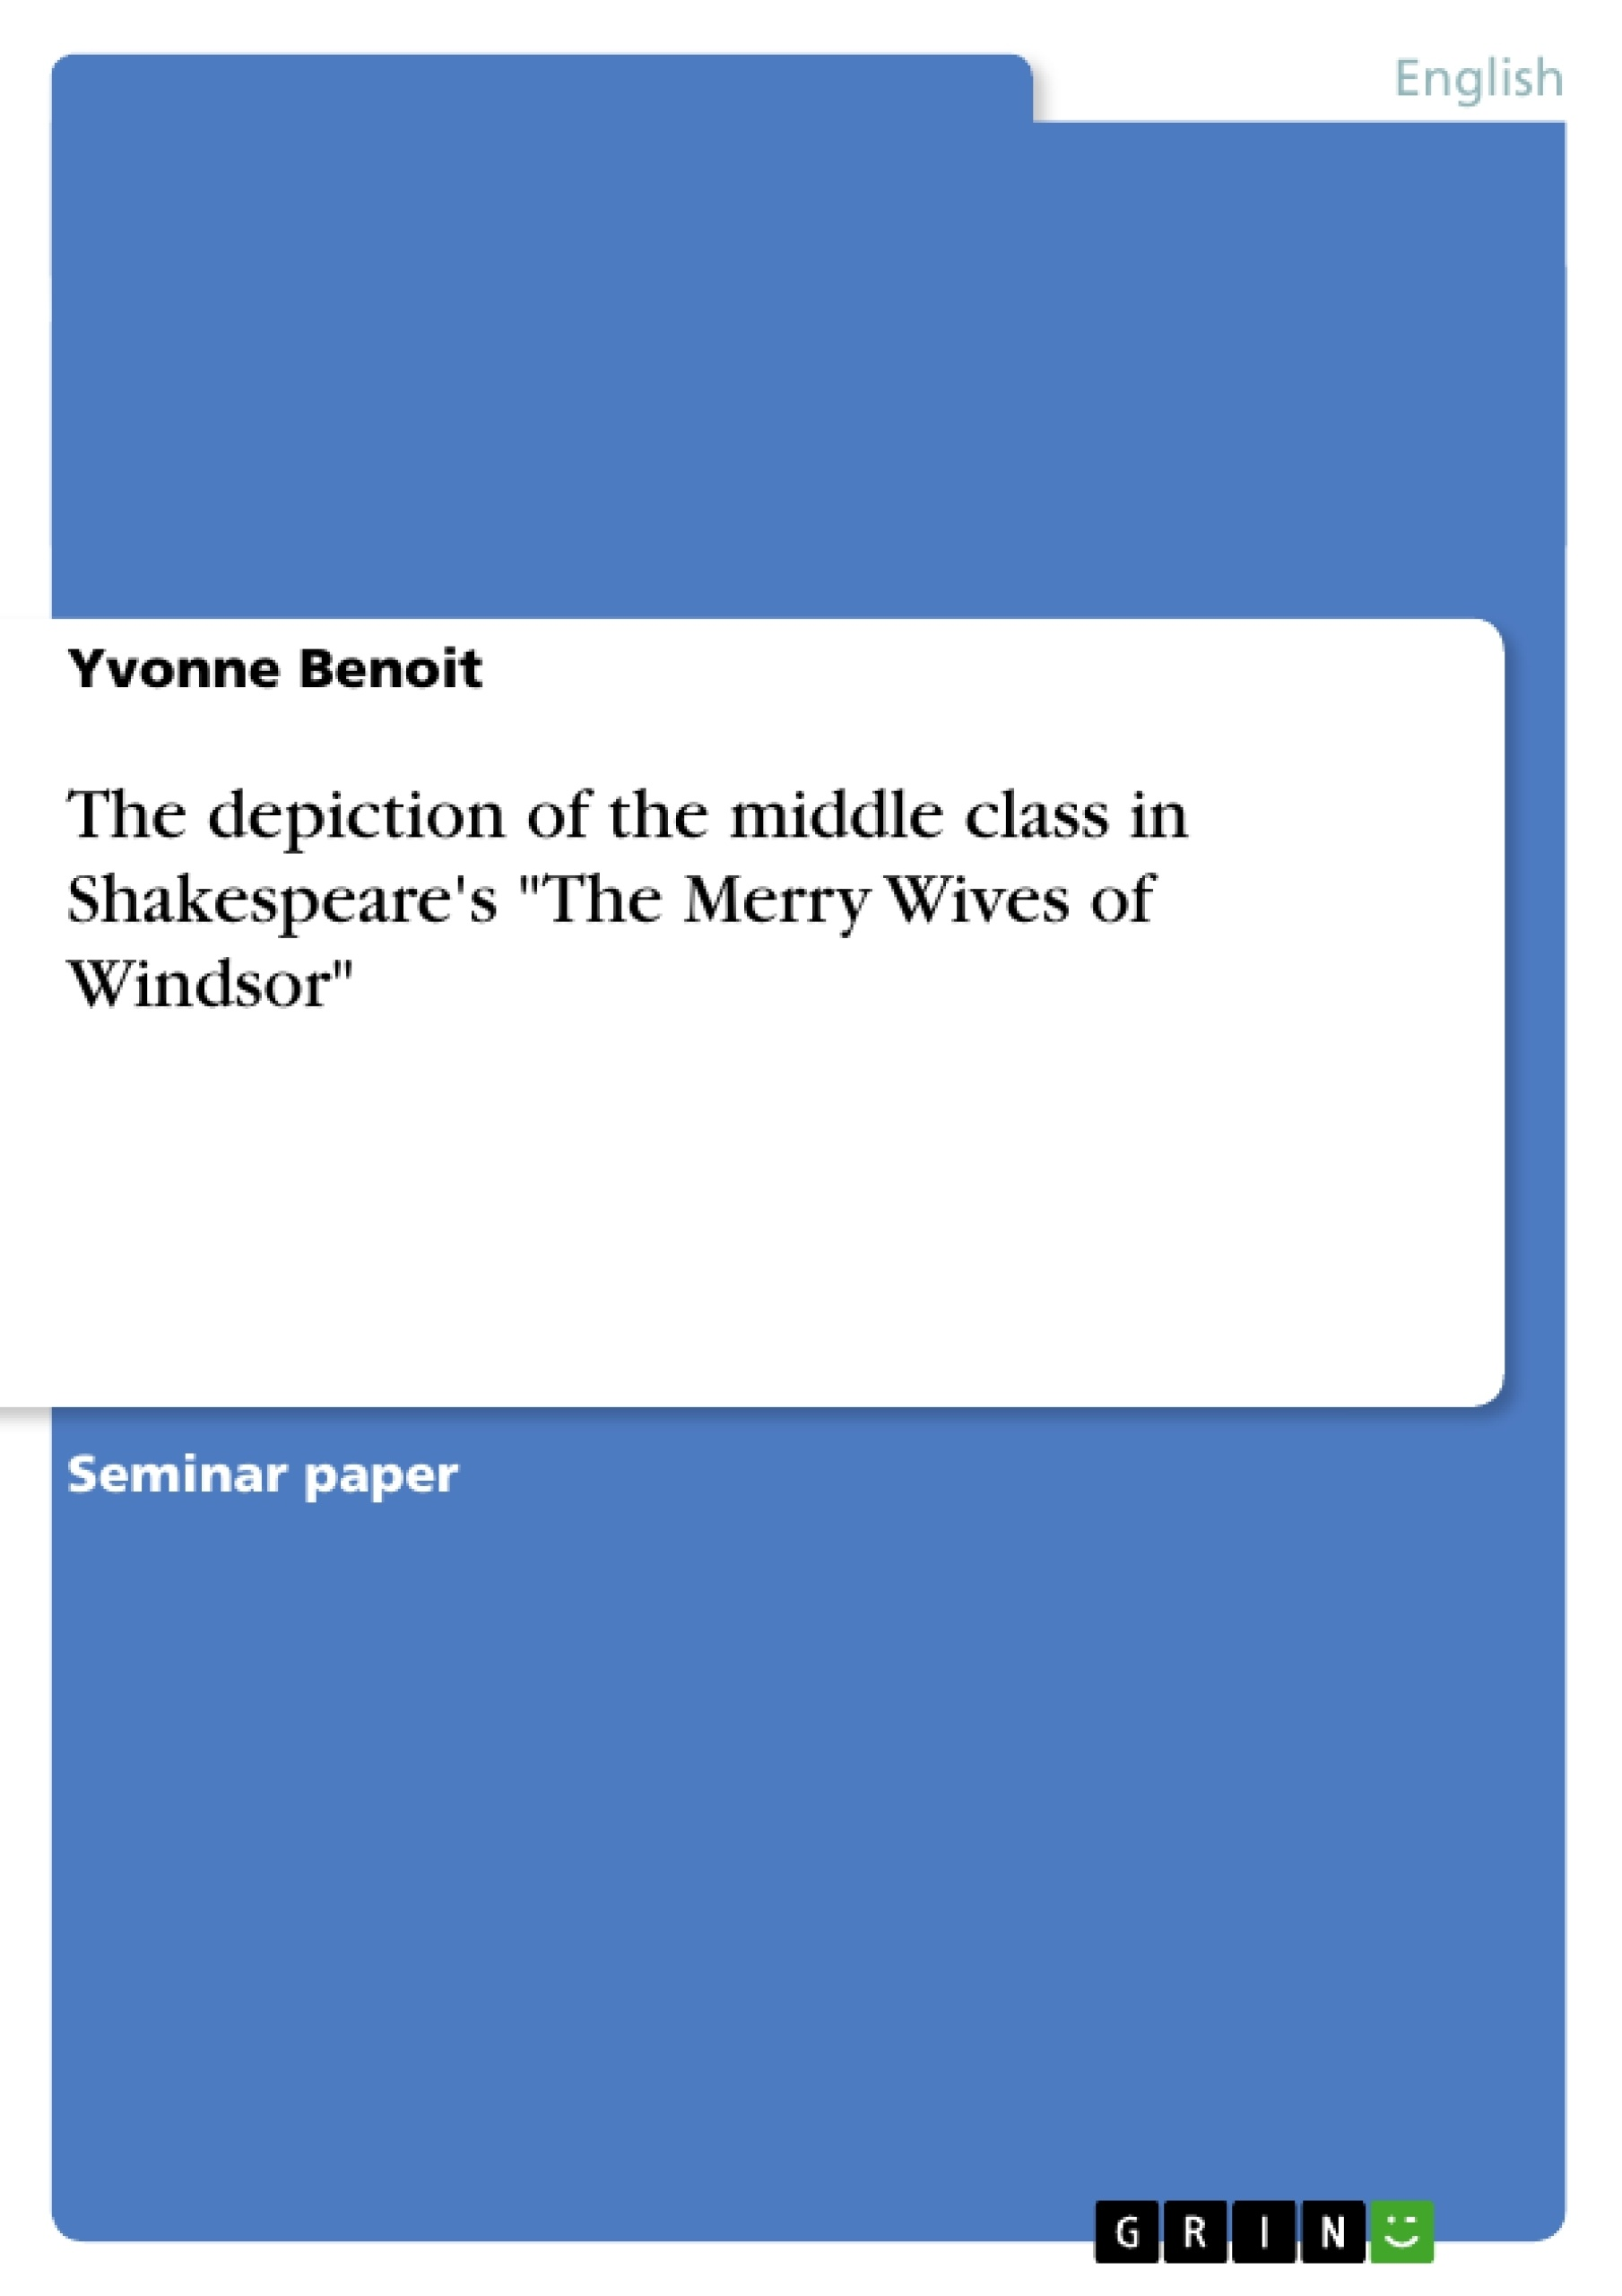 """Title: The depiction of the middle class in Shakespeare's """"The Merry Wives of Windsor"""""""